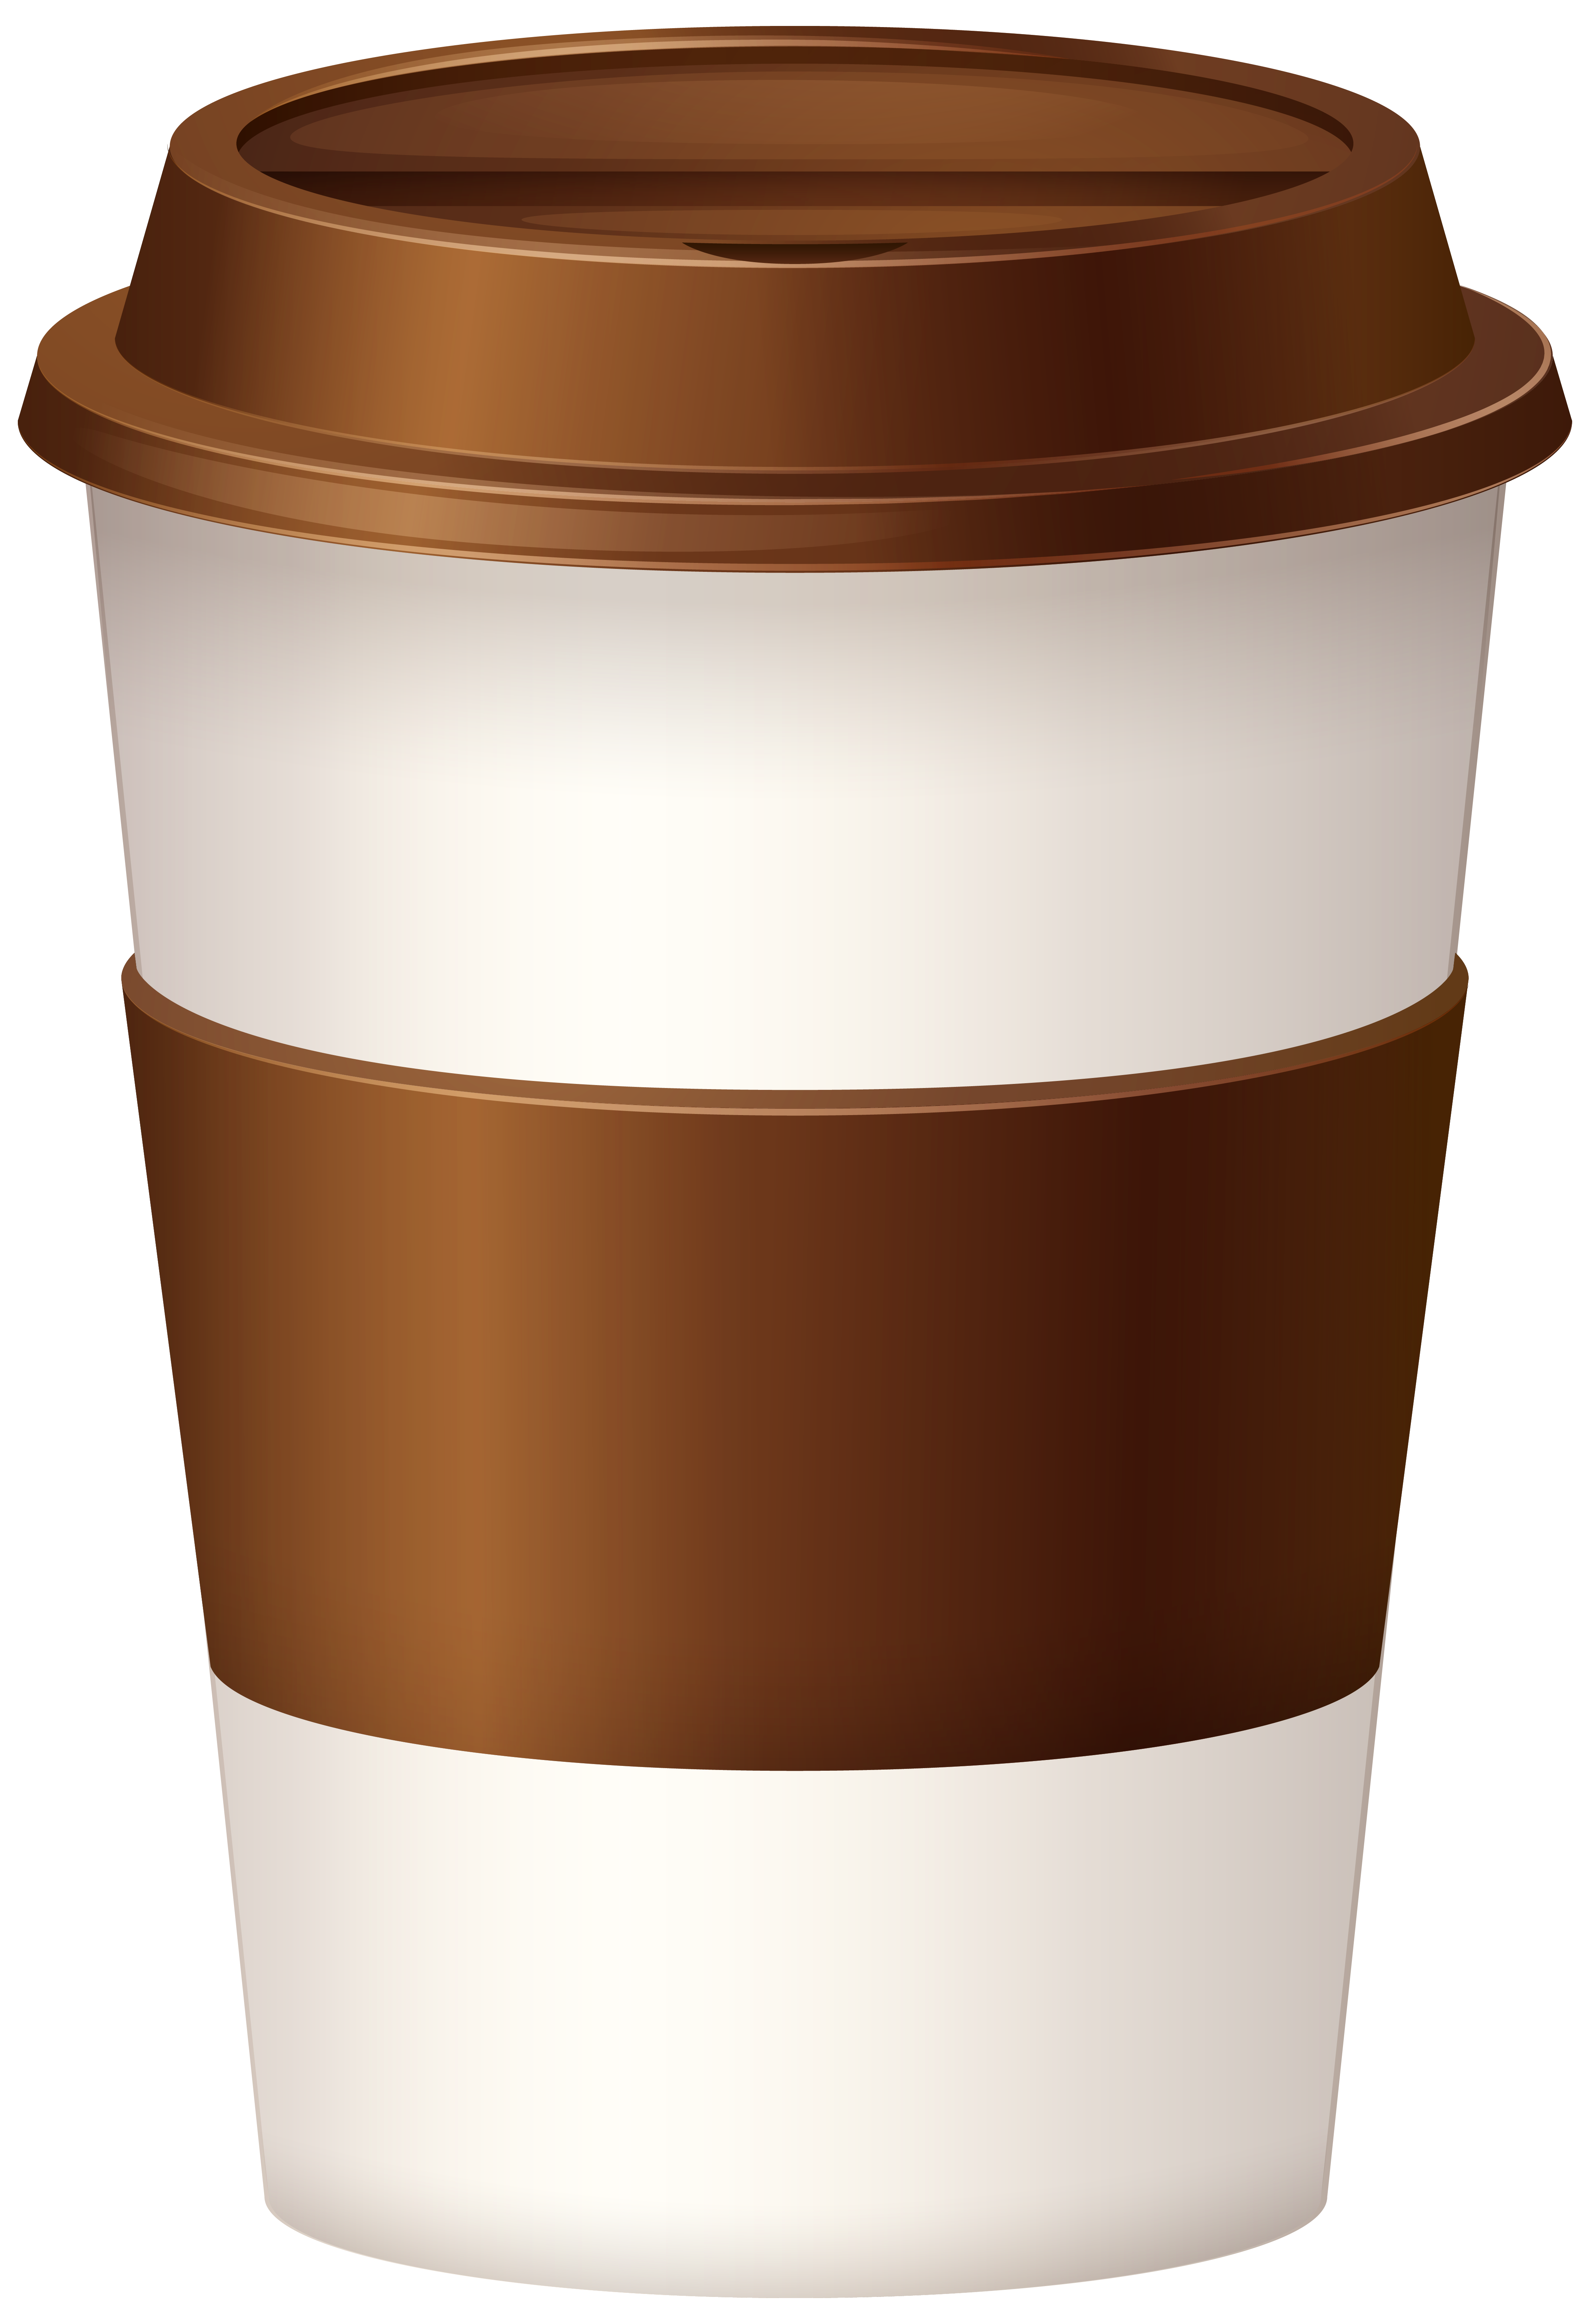 Hot coffee cup clipart image